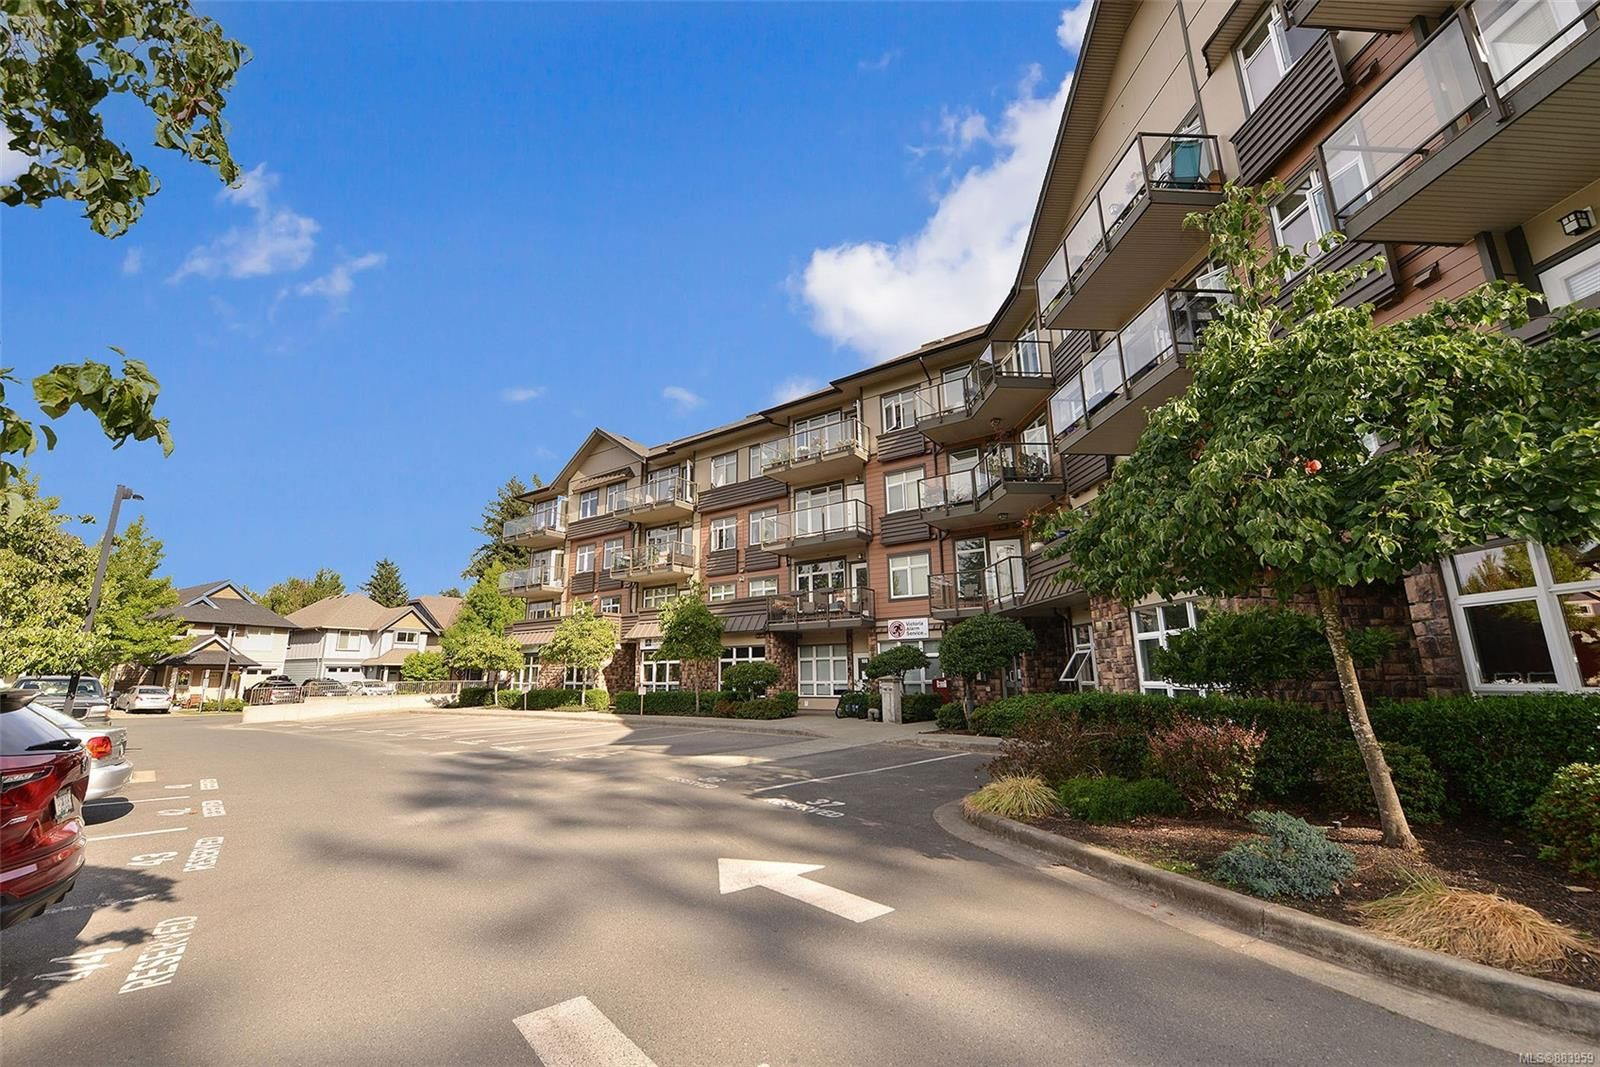 Main Photo: 304 2220 Sooke Rd in : Co Hatley Park Condo for sale (Colwood)  : MLS®# 883959